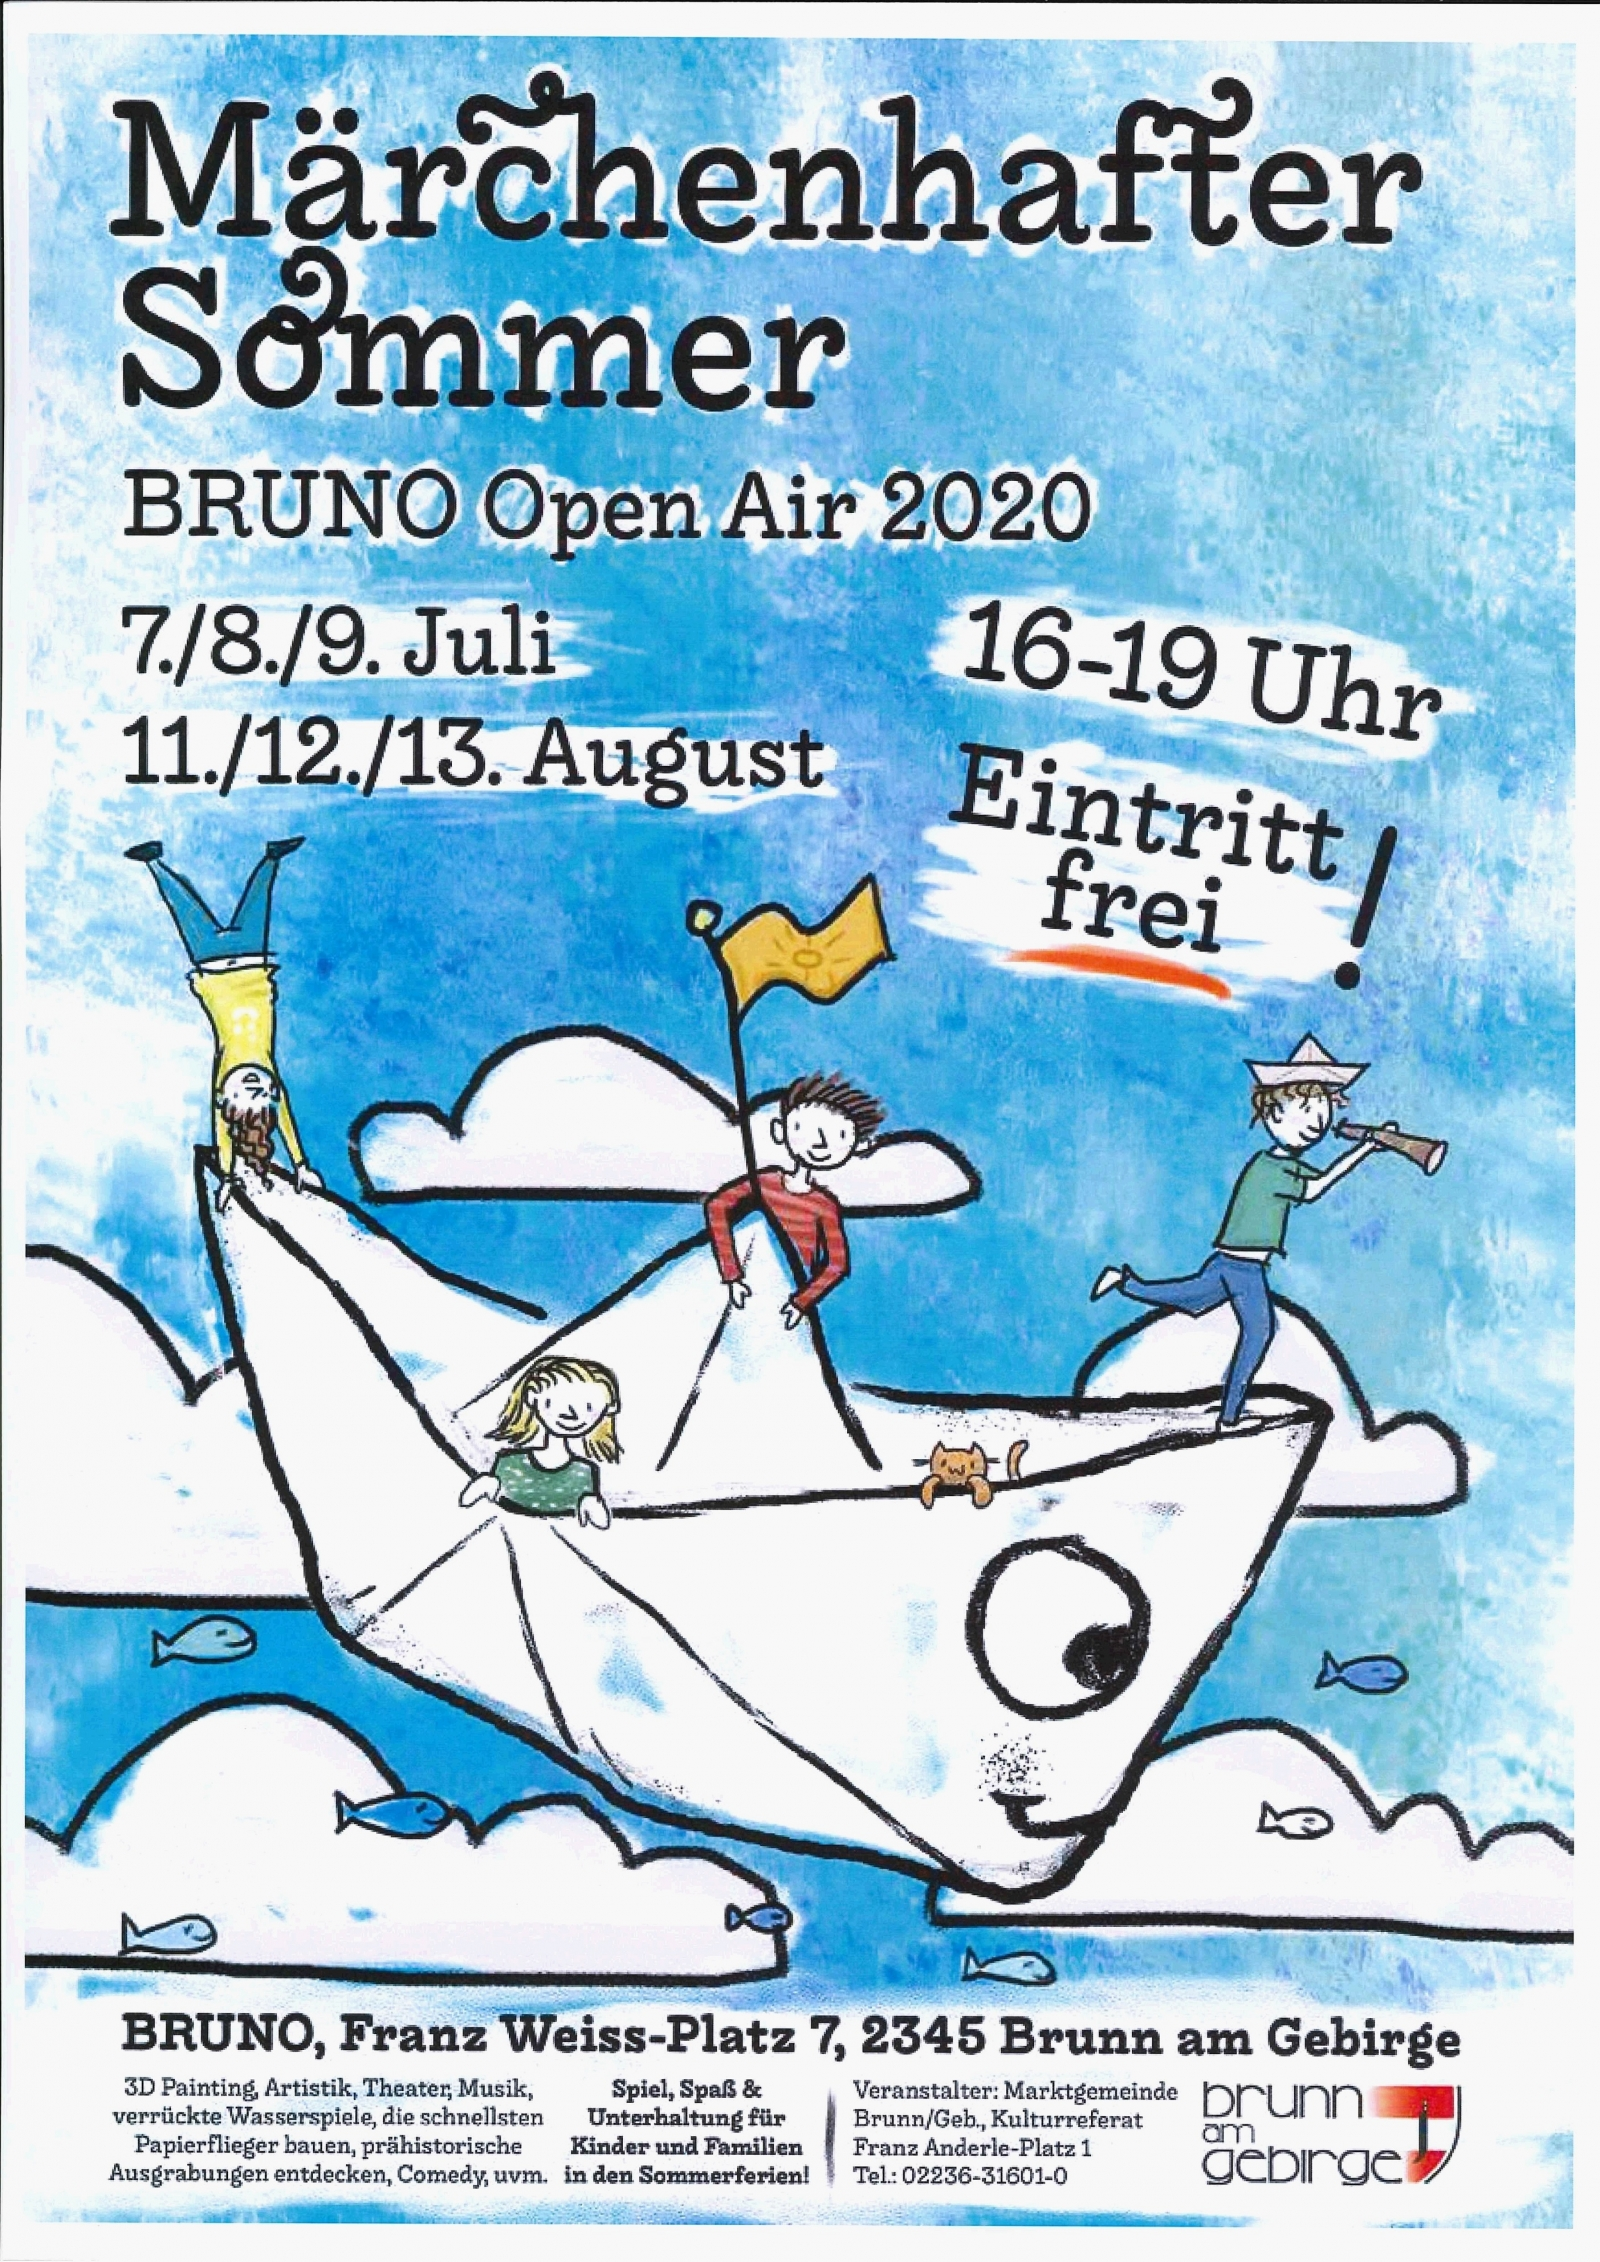 Märchenhafter Sommer - BRUNO Open Air 2020